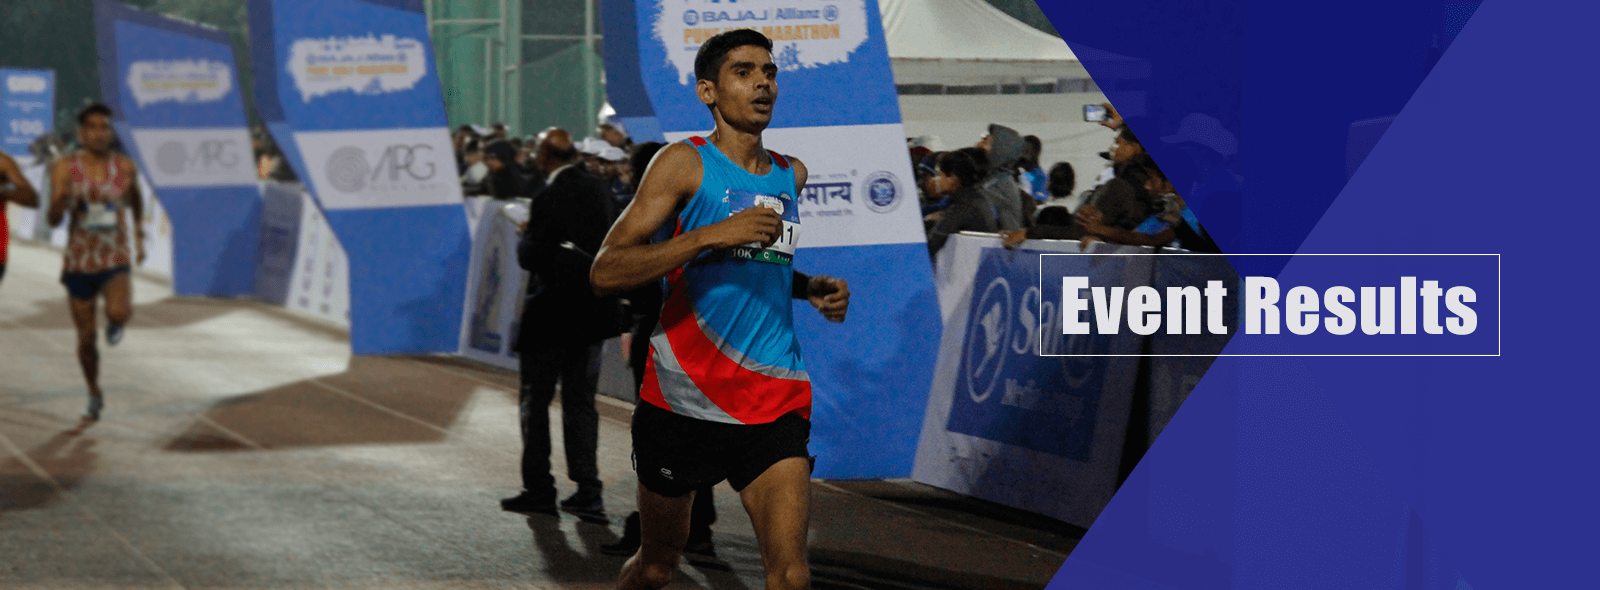 Bajaj allianz pune half marathon 2019 returns bigger, enhanced, grander